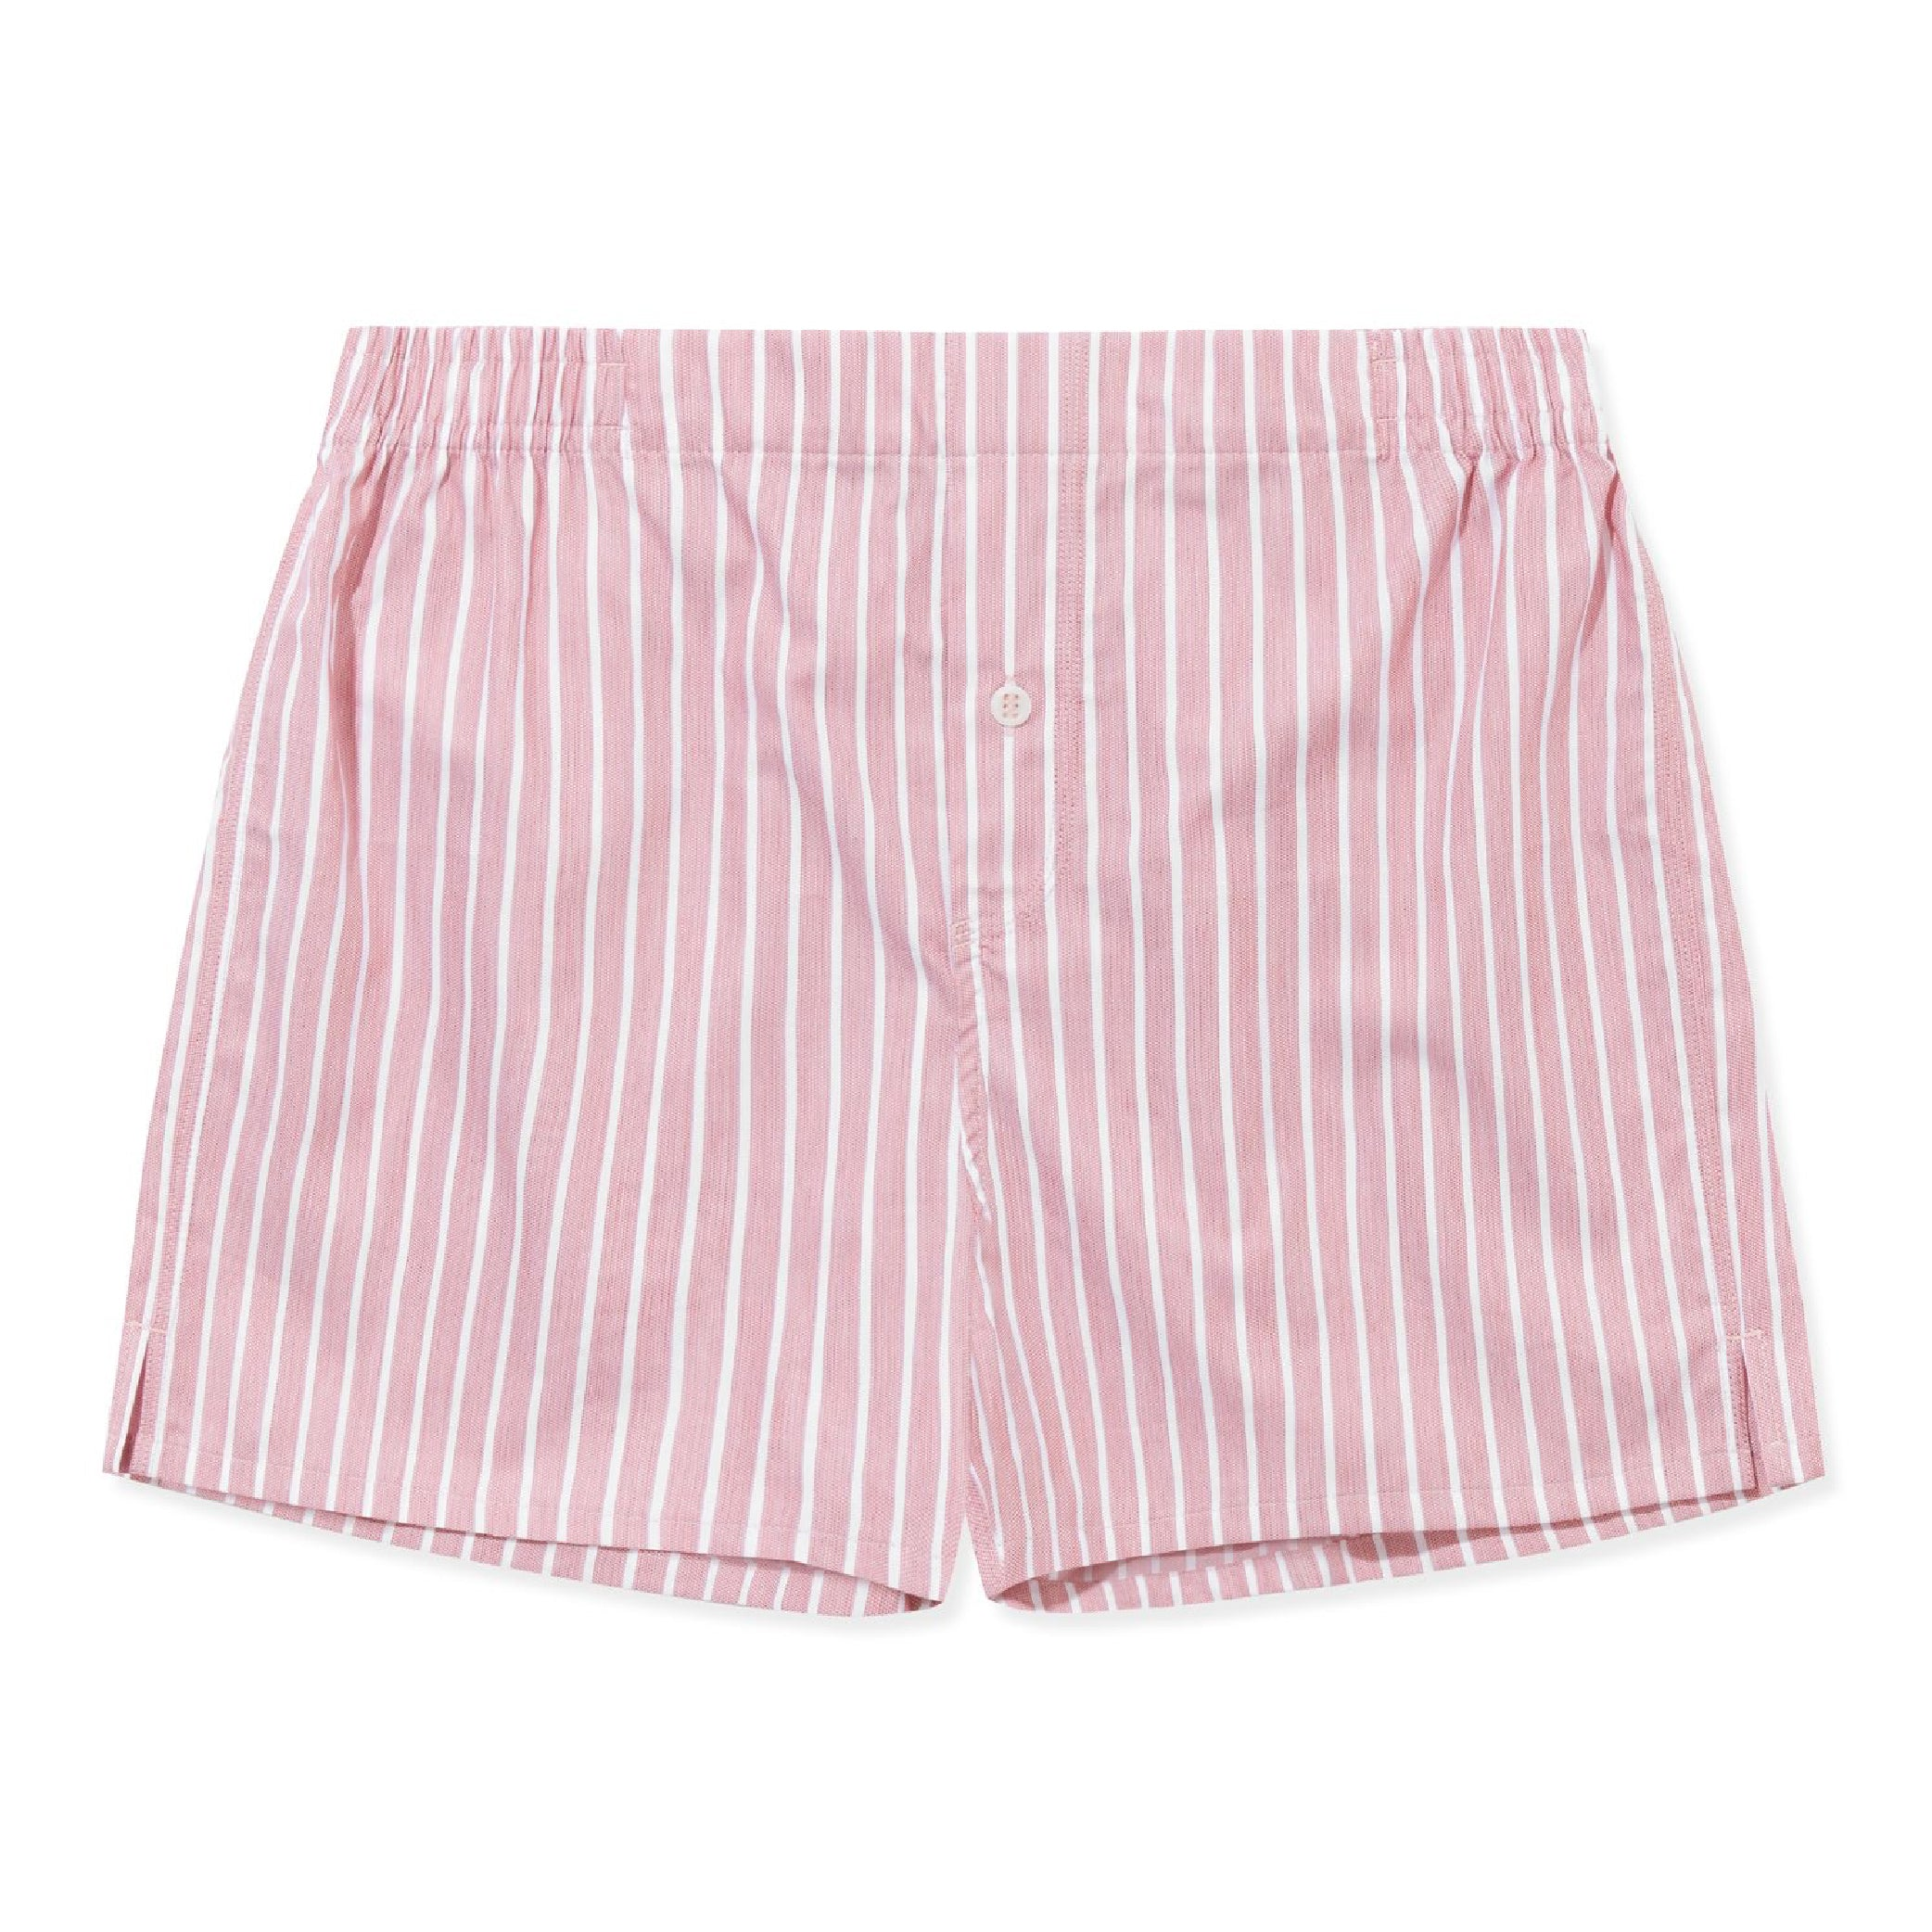 3 Pack Boxer Short - Pink Stripe, Classic White, Sky Blue